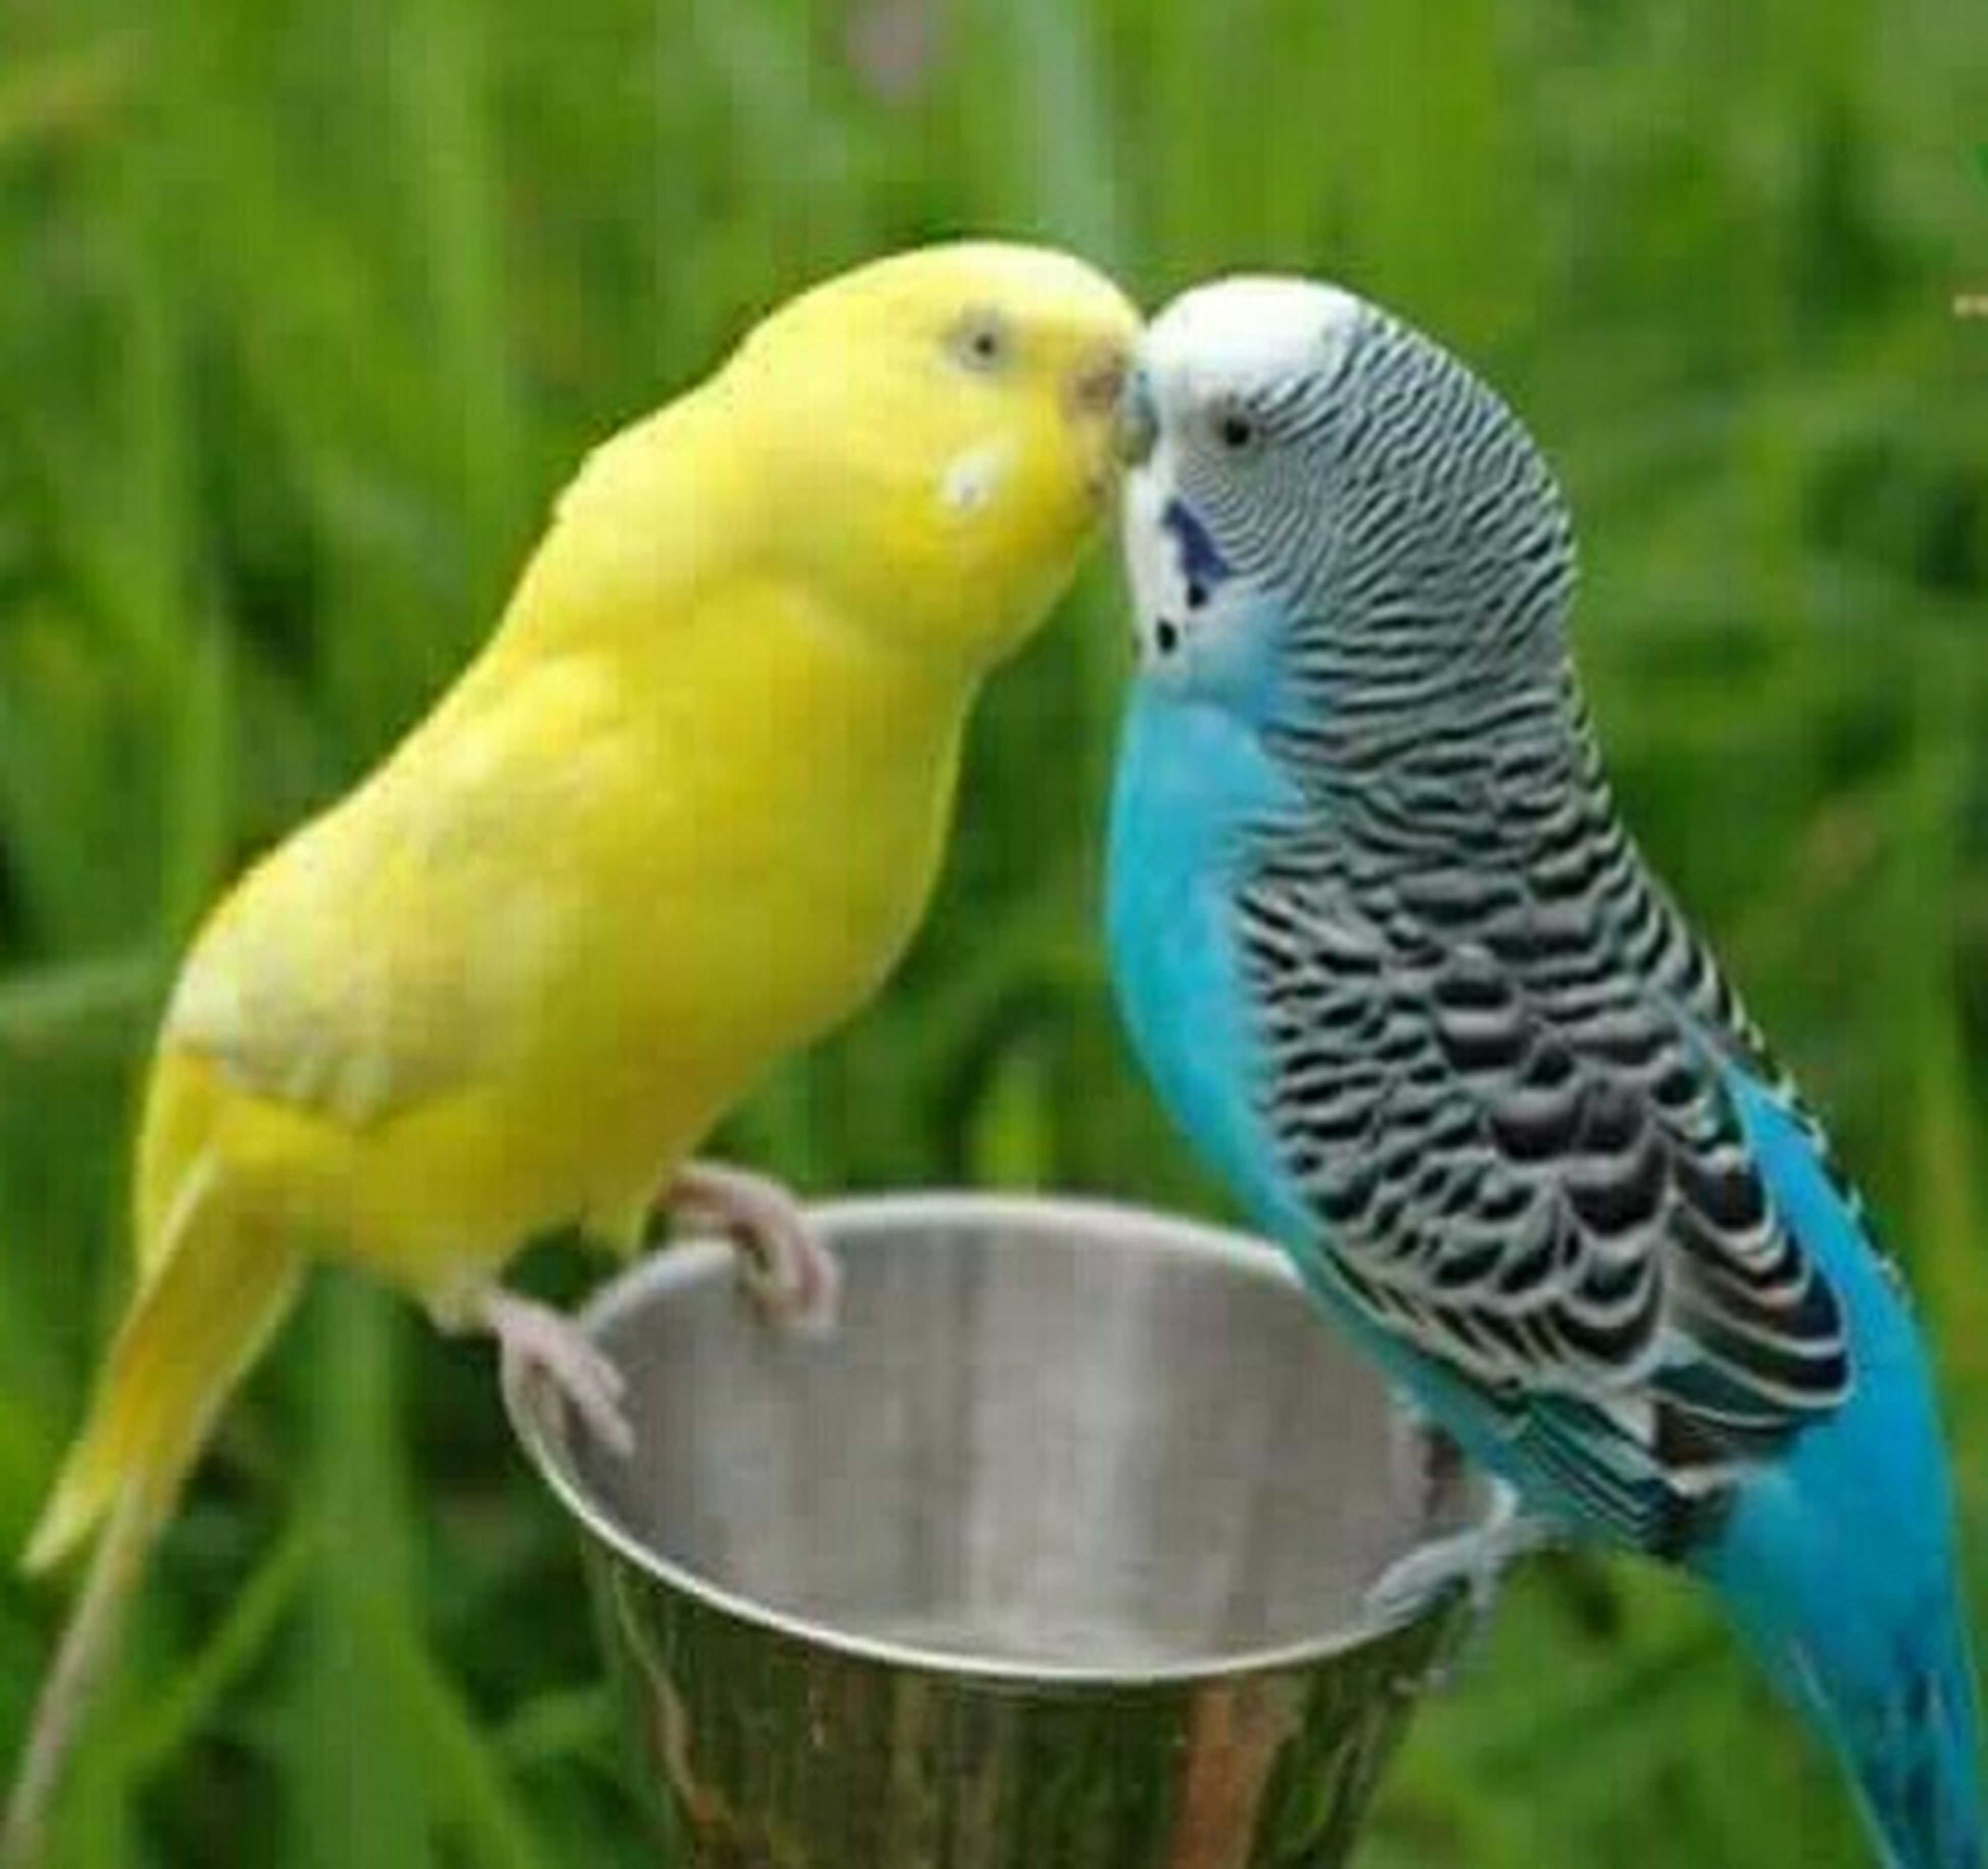 bird, animal themes, budgerigar, focus on foreground, animal wildlife, animals in the wild, close-up, perching, nature, togetherness, parrot, no people, outdoors, day, grass